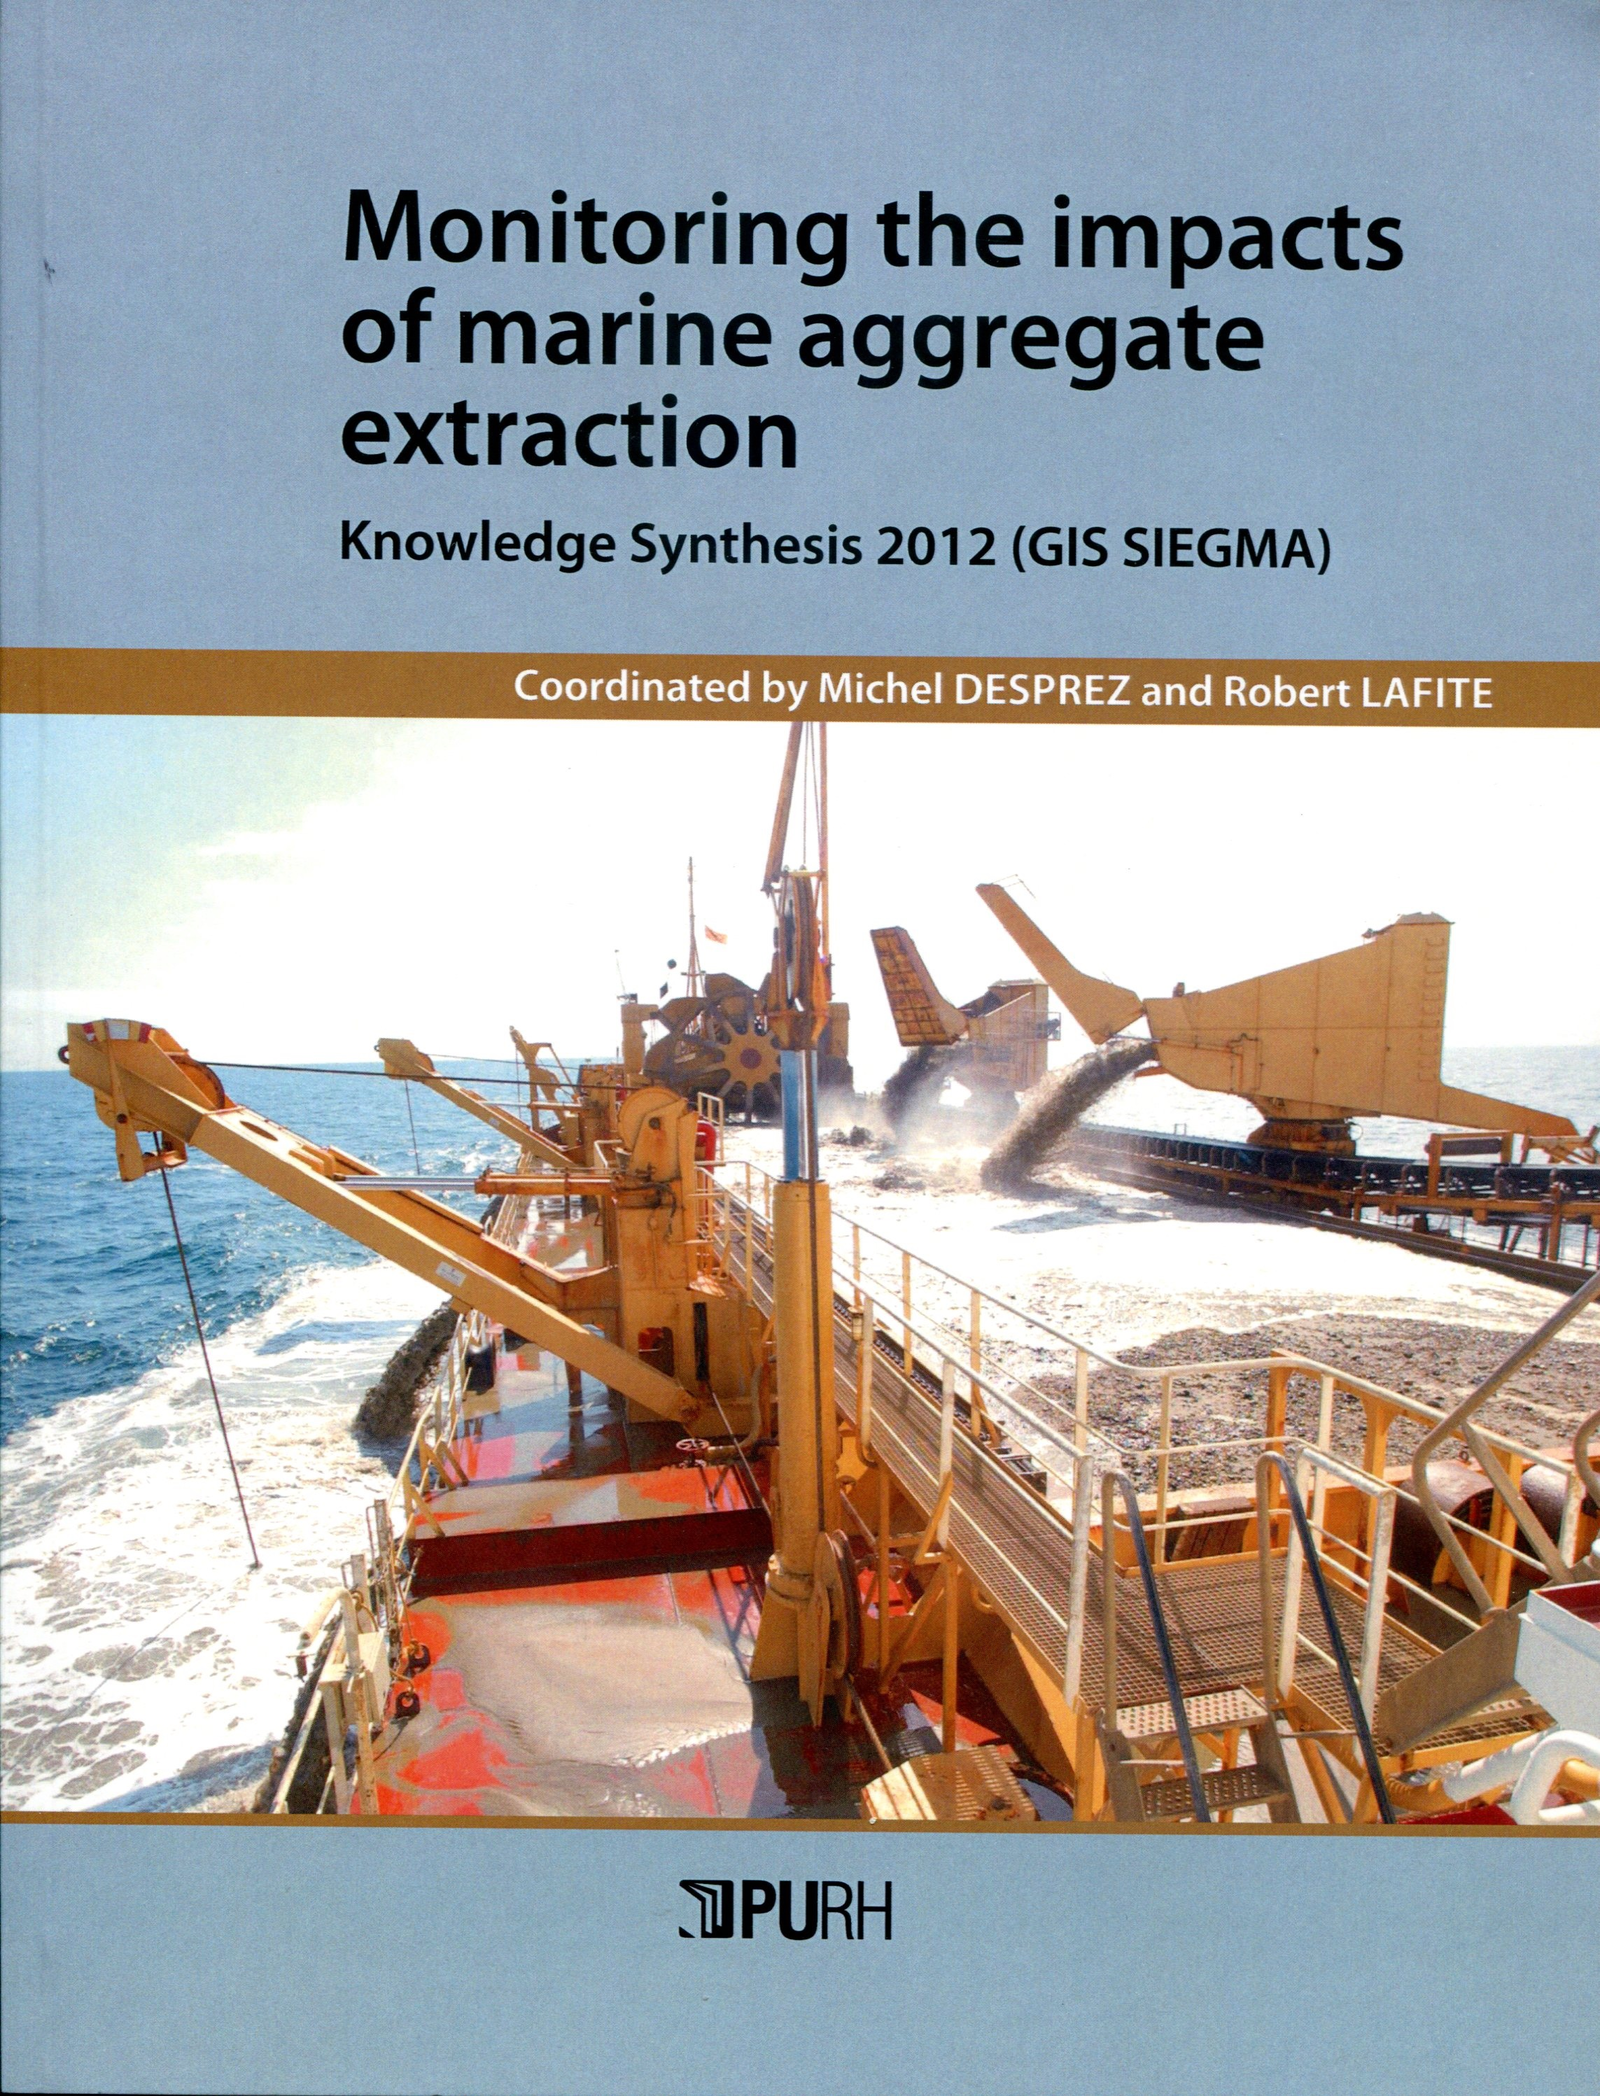 Monitoring the impacts of marine aggregate extraction